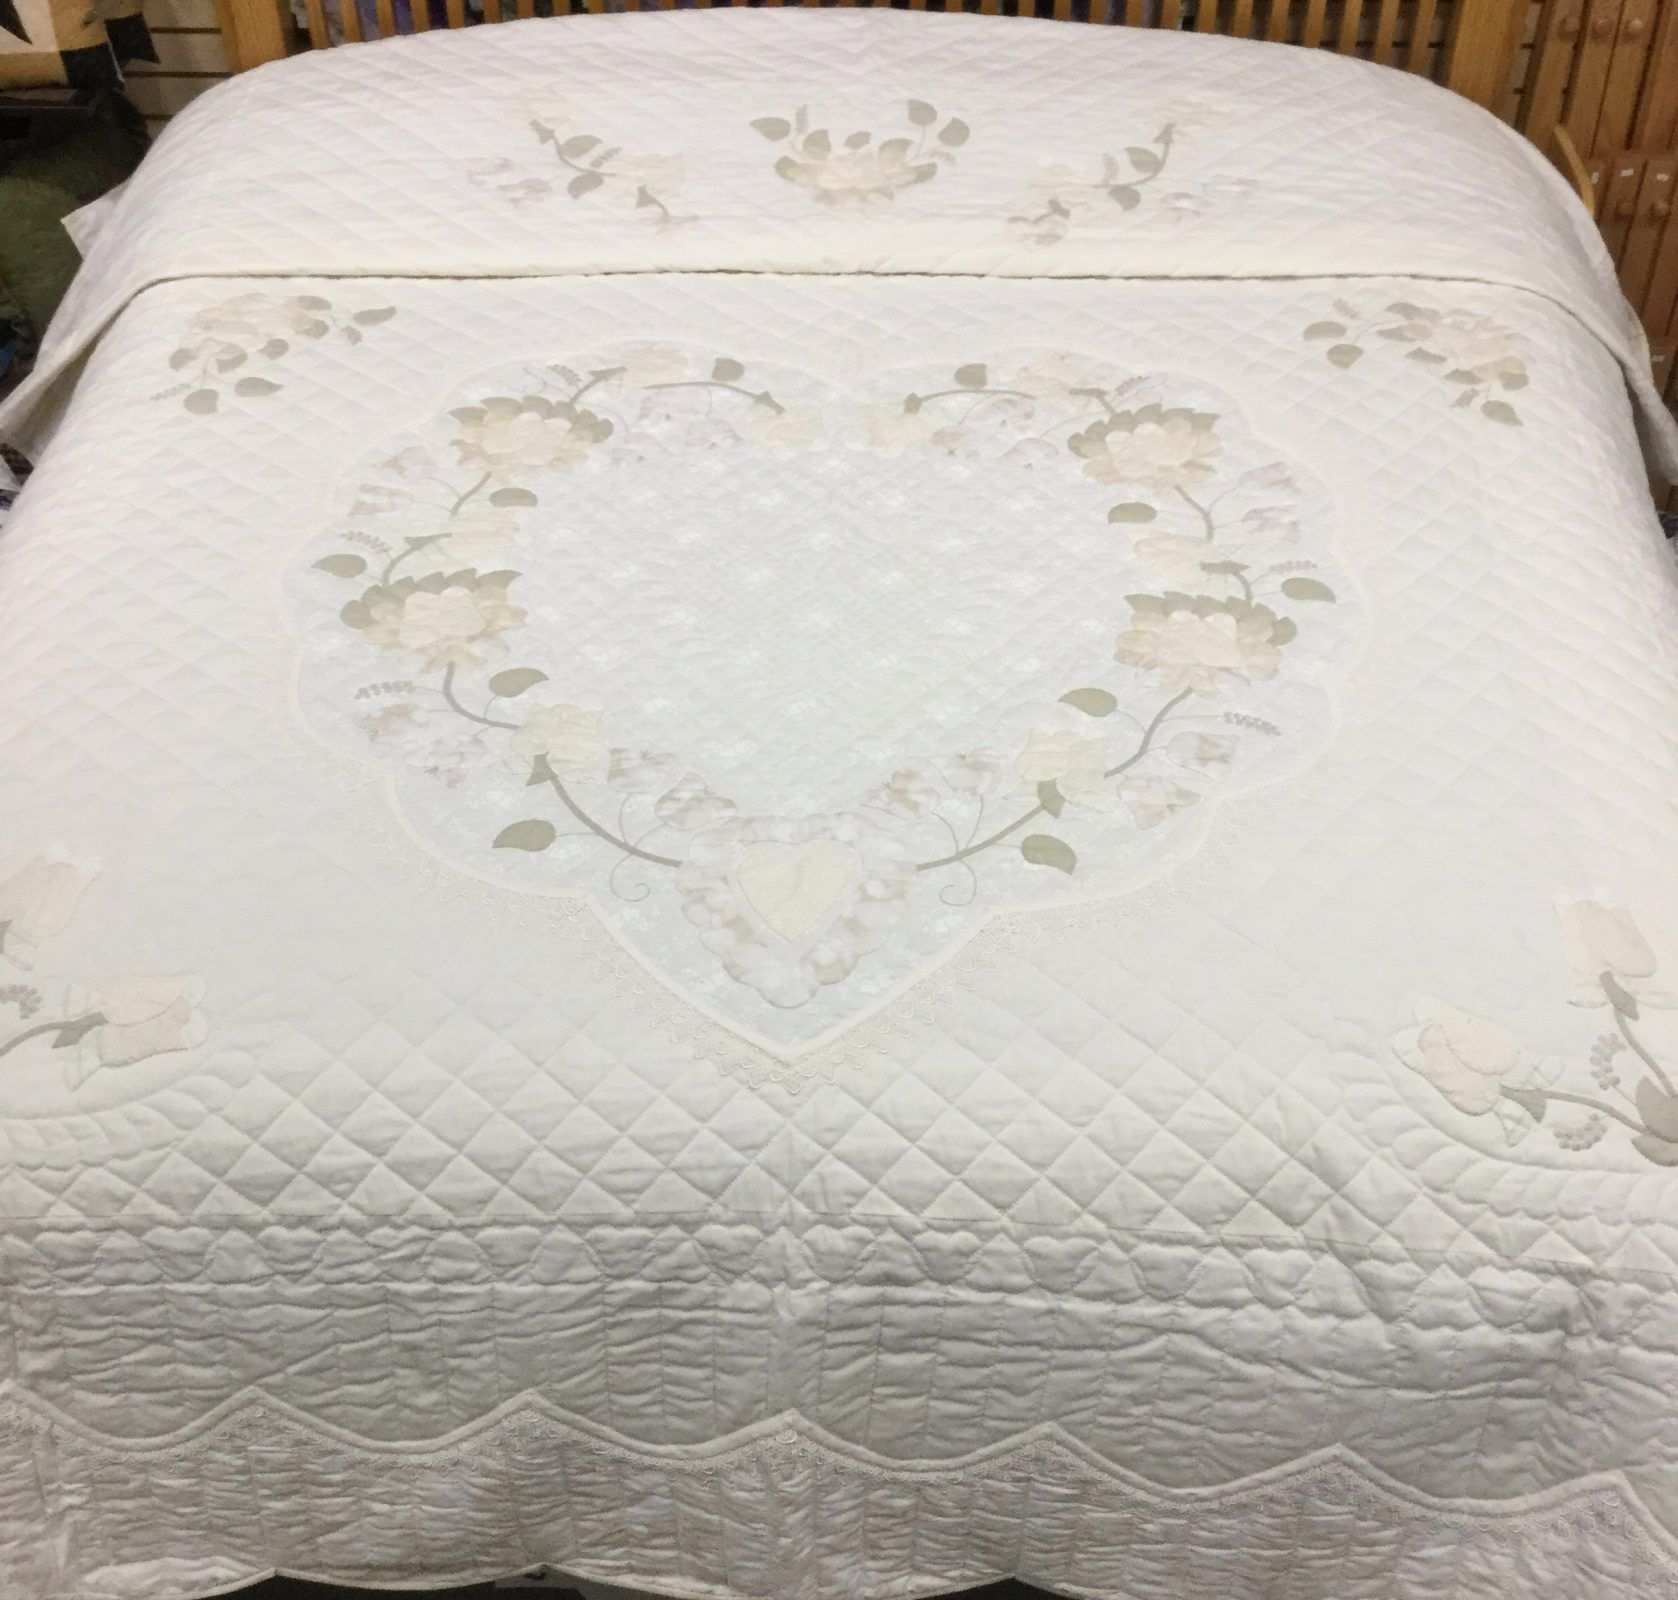 Lacy Heart Of Roses Quilt King Family Farm Handcrafts King Quilt Quilts Quilt Care